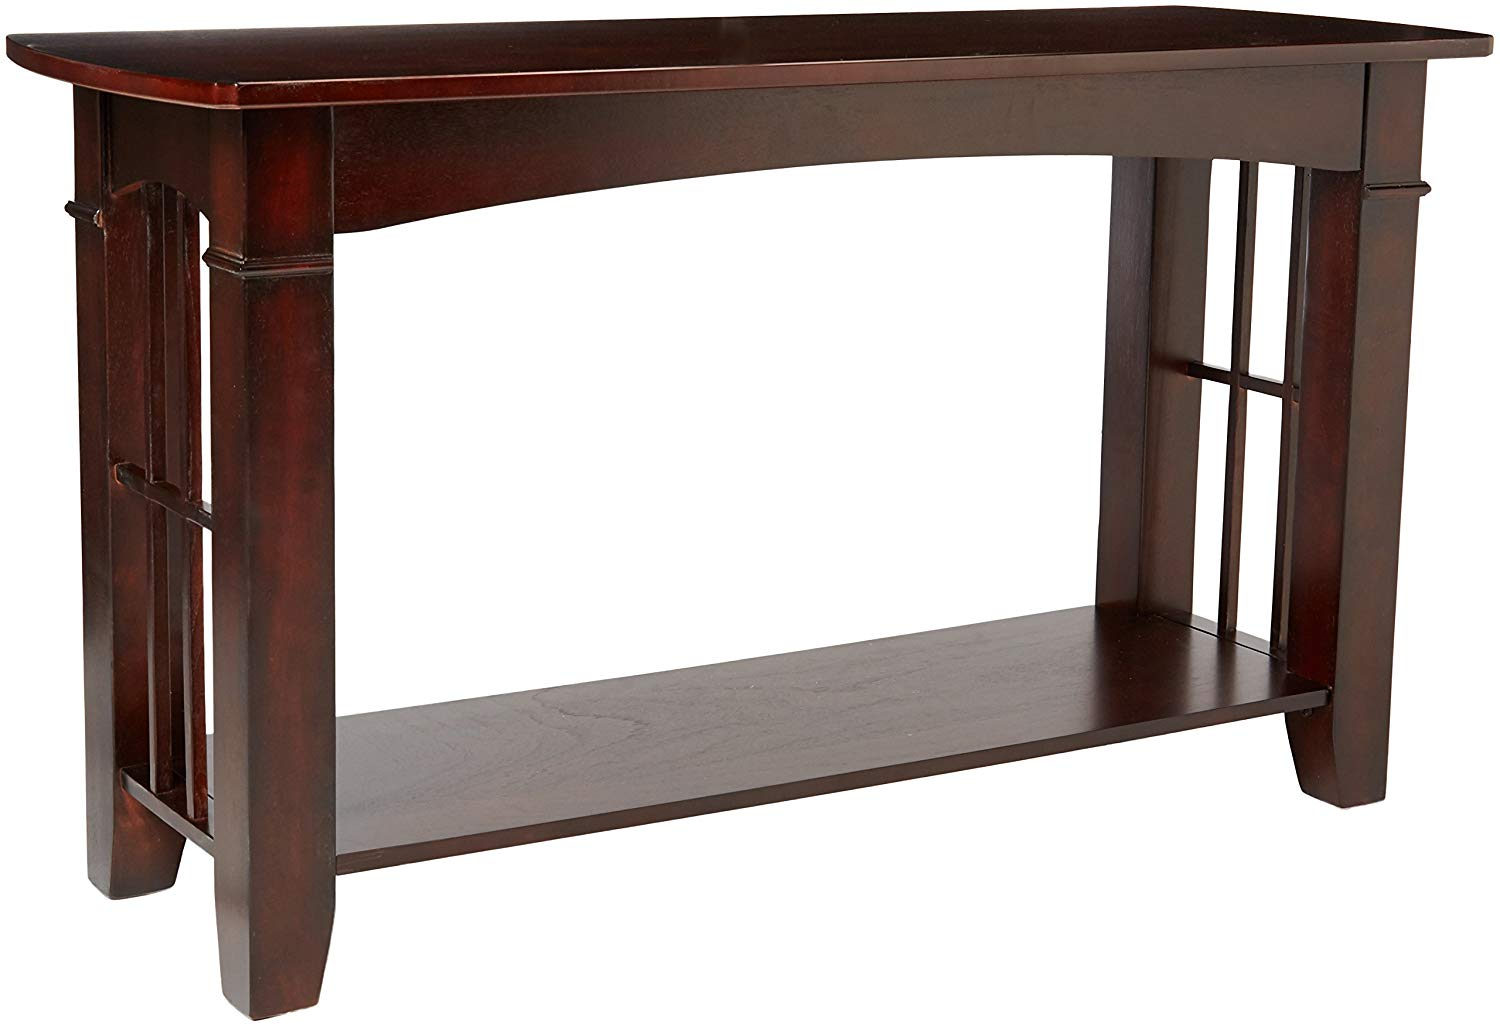 coaster home furnishings abernathy end table with shelf cherry finish merlot kitchen dining green lamp ash gray coffee gold and marble side unpainted wooden benches ethan allen